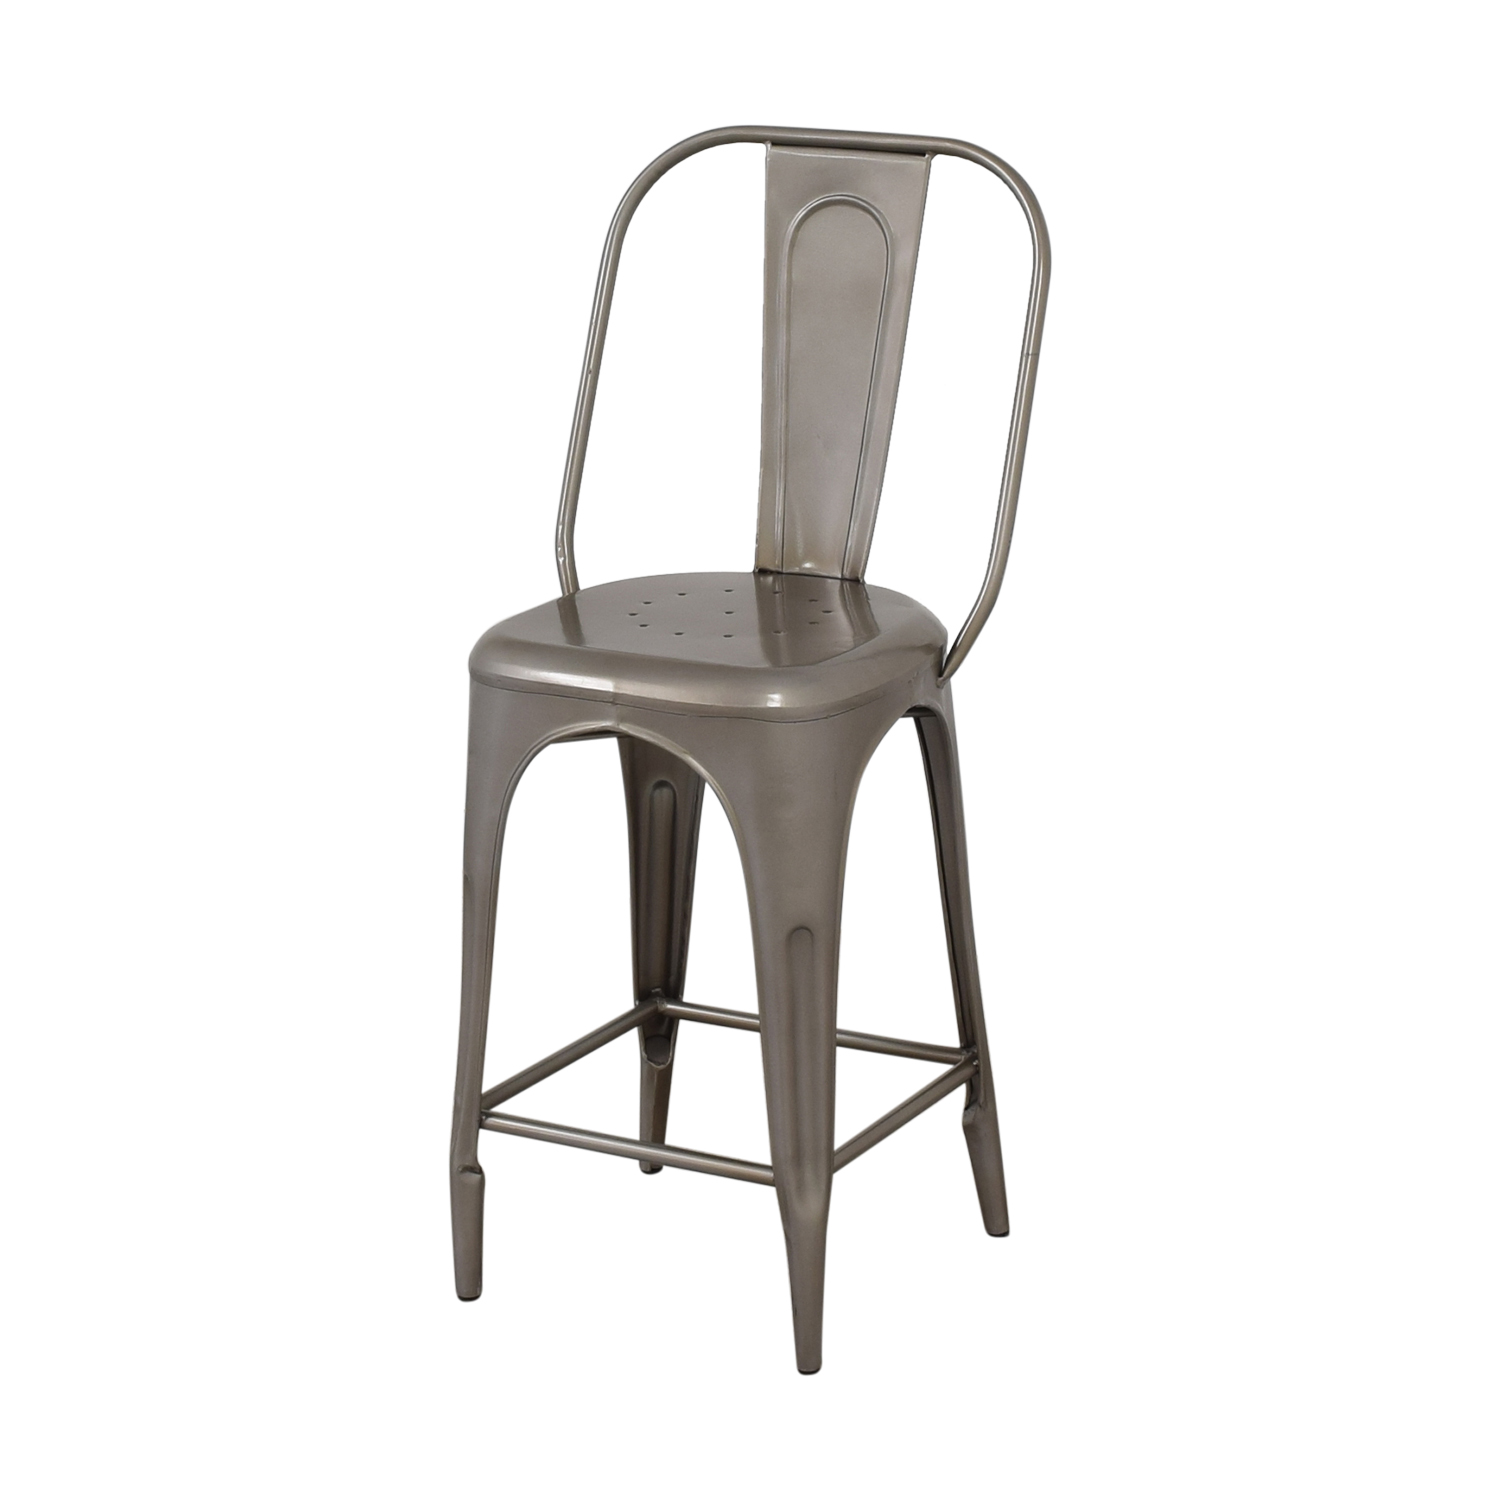 Restoration Hardware Remy Counter Stools / Chairs